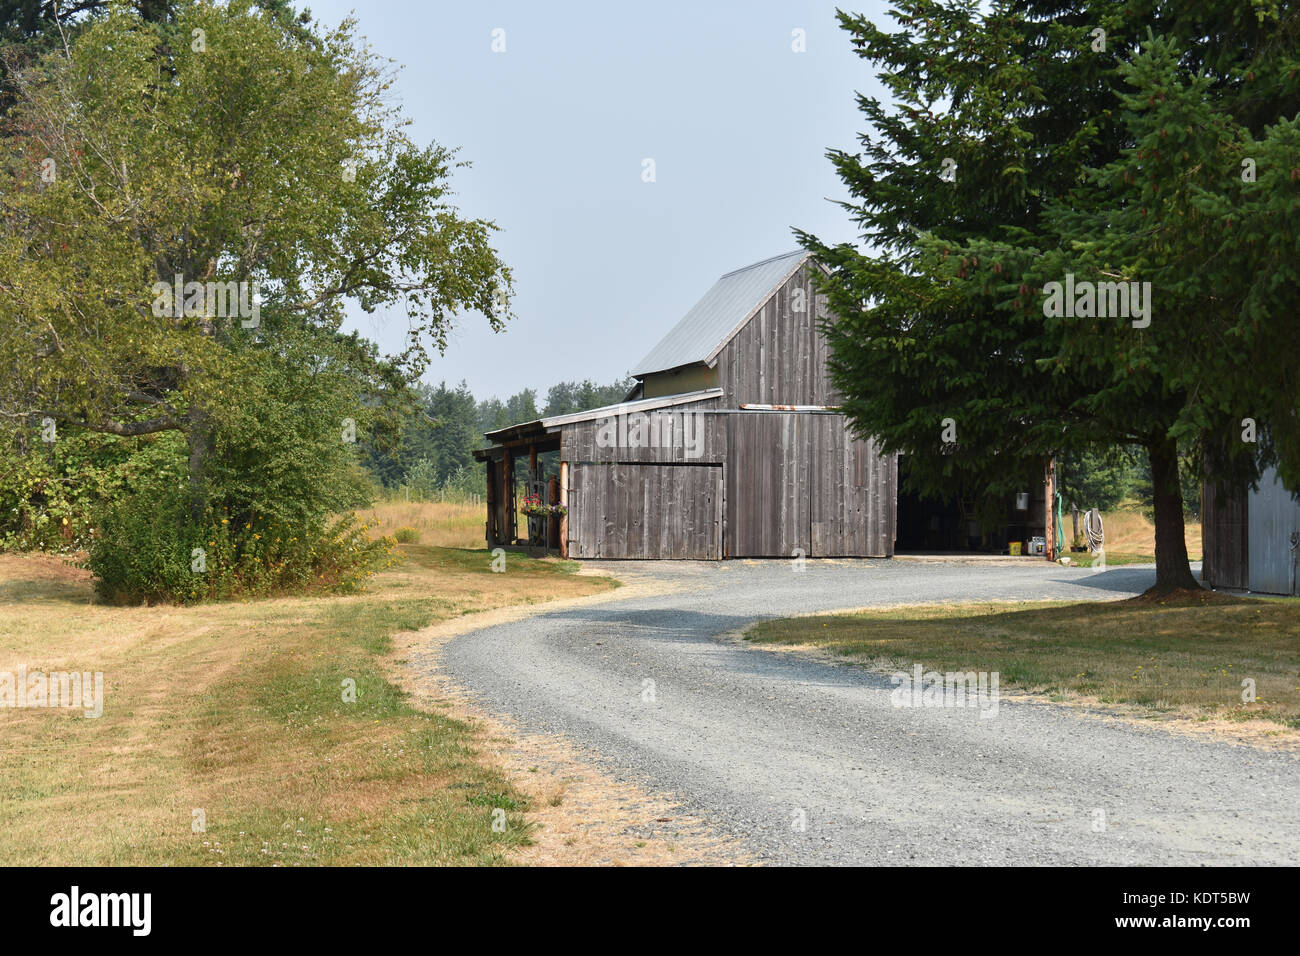 Old barn with driveway in the foreground and trees on each side. - Stock Image